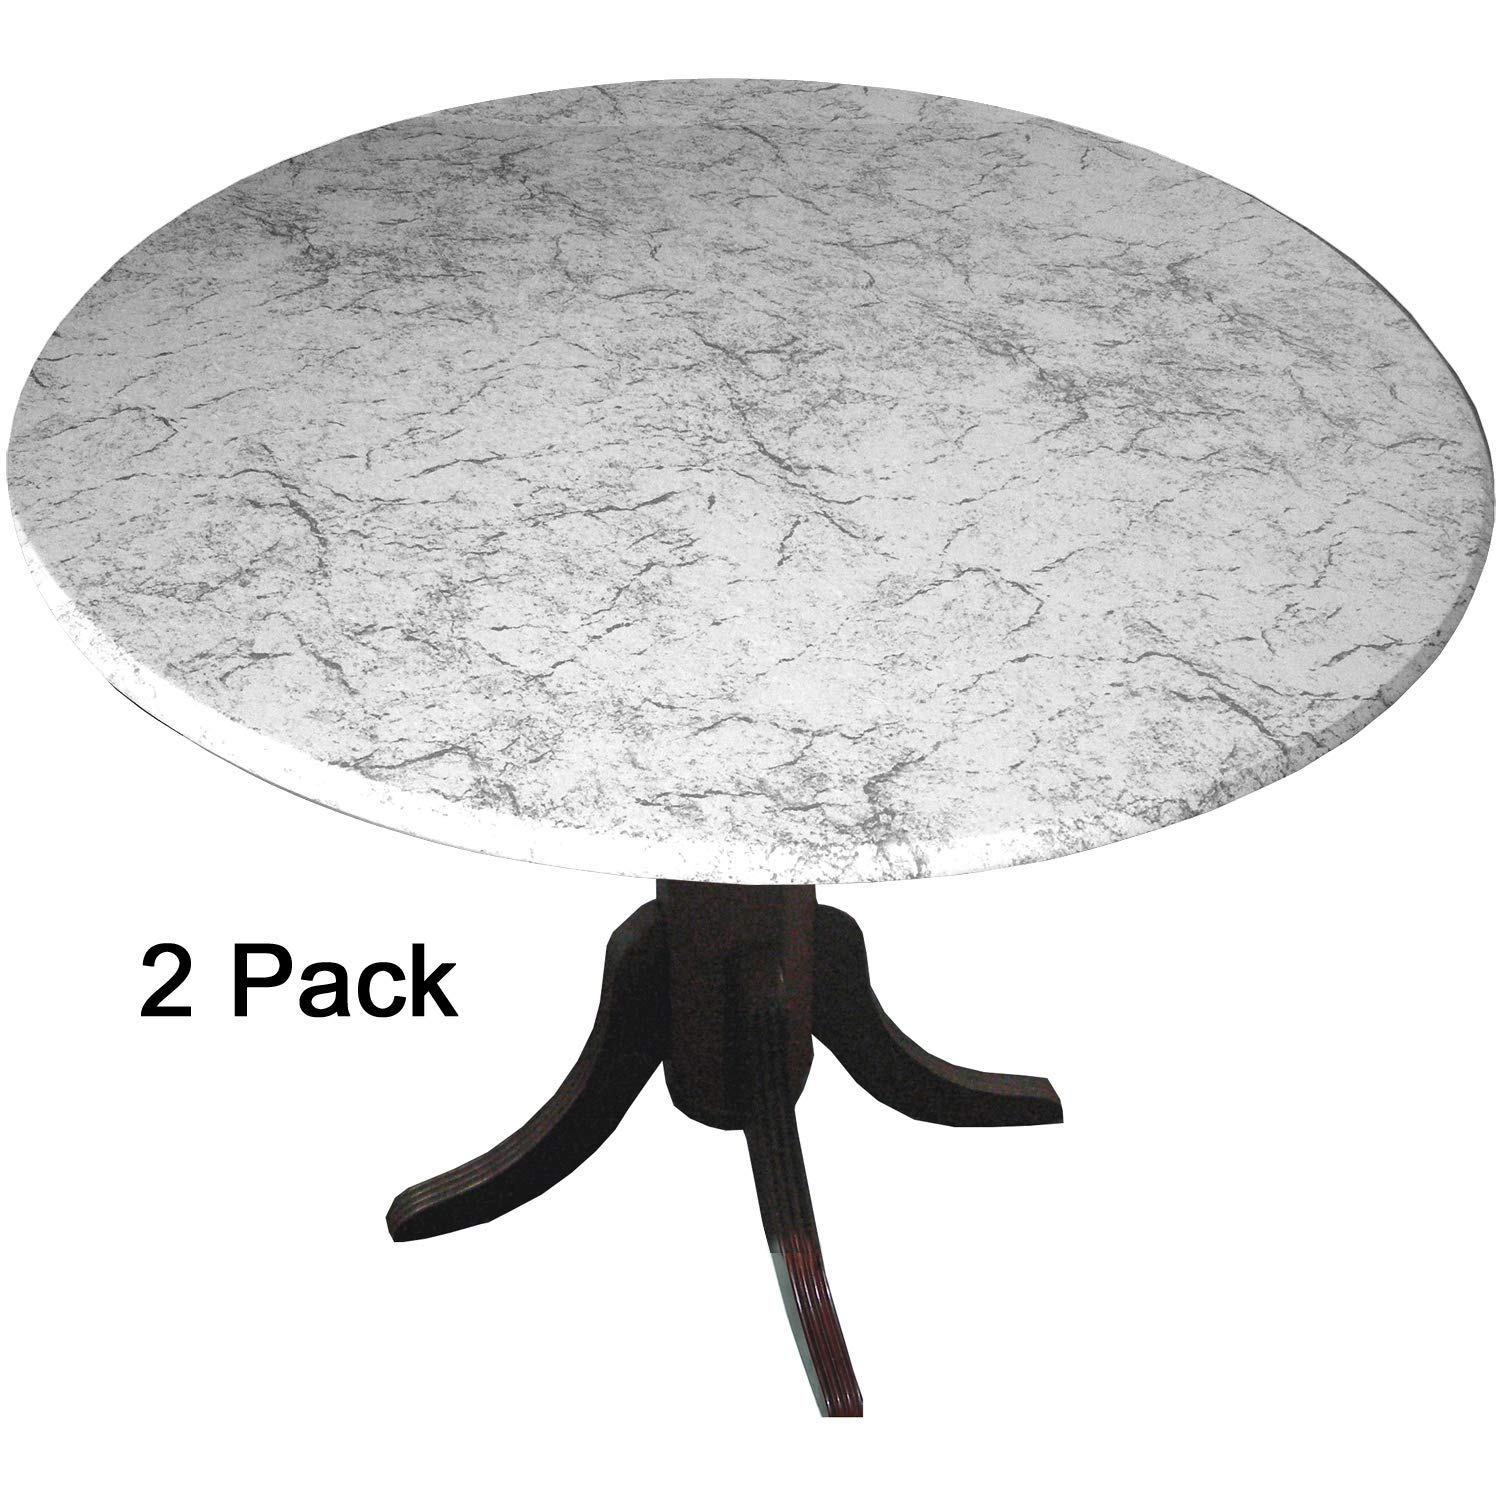 2 Pack MarbleTop Fitted Vinyl tablecloths (tablecovers, Table Covers) - Florentine Marble White by GoMarble